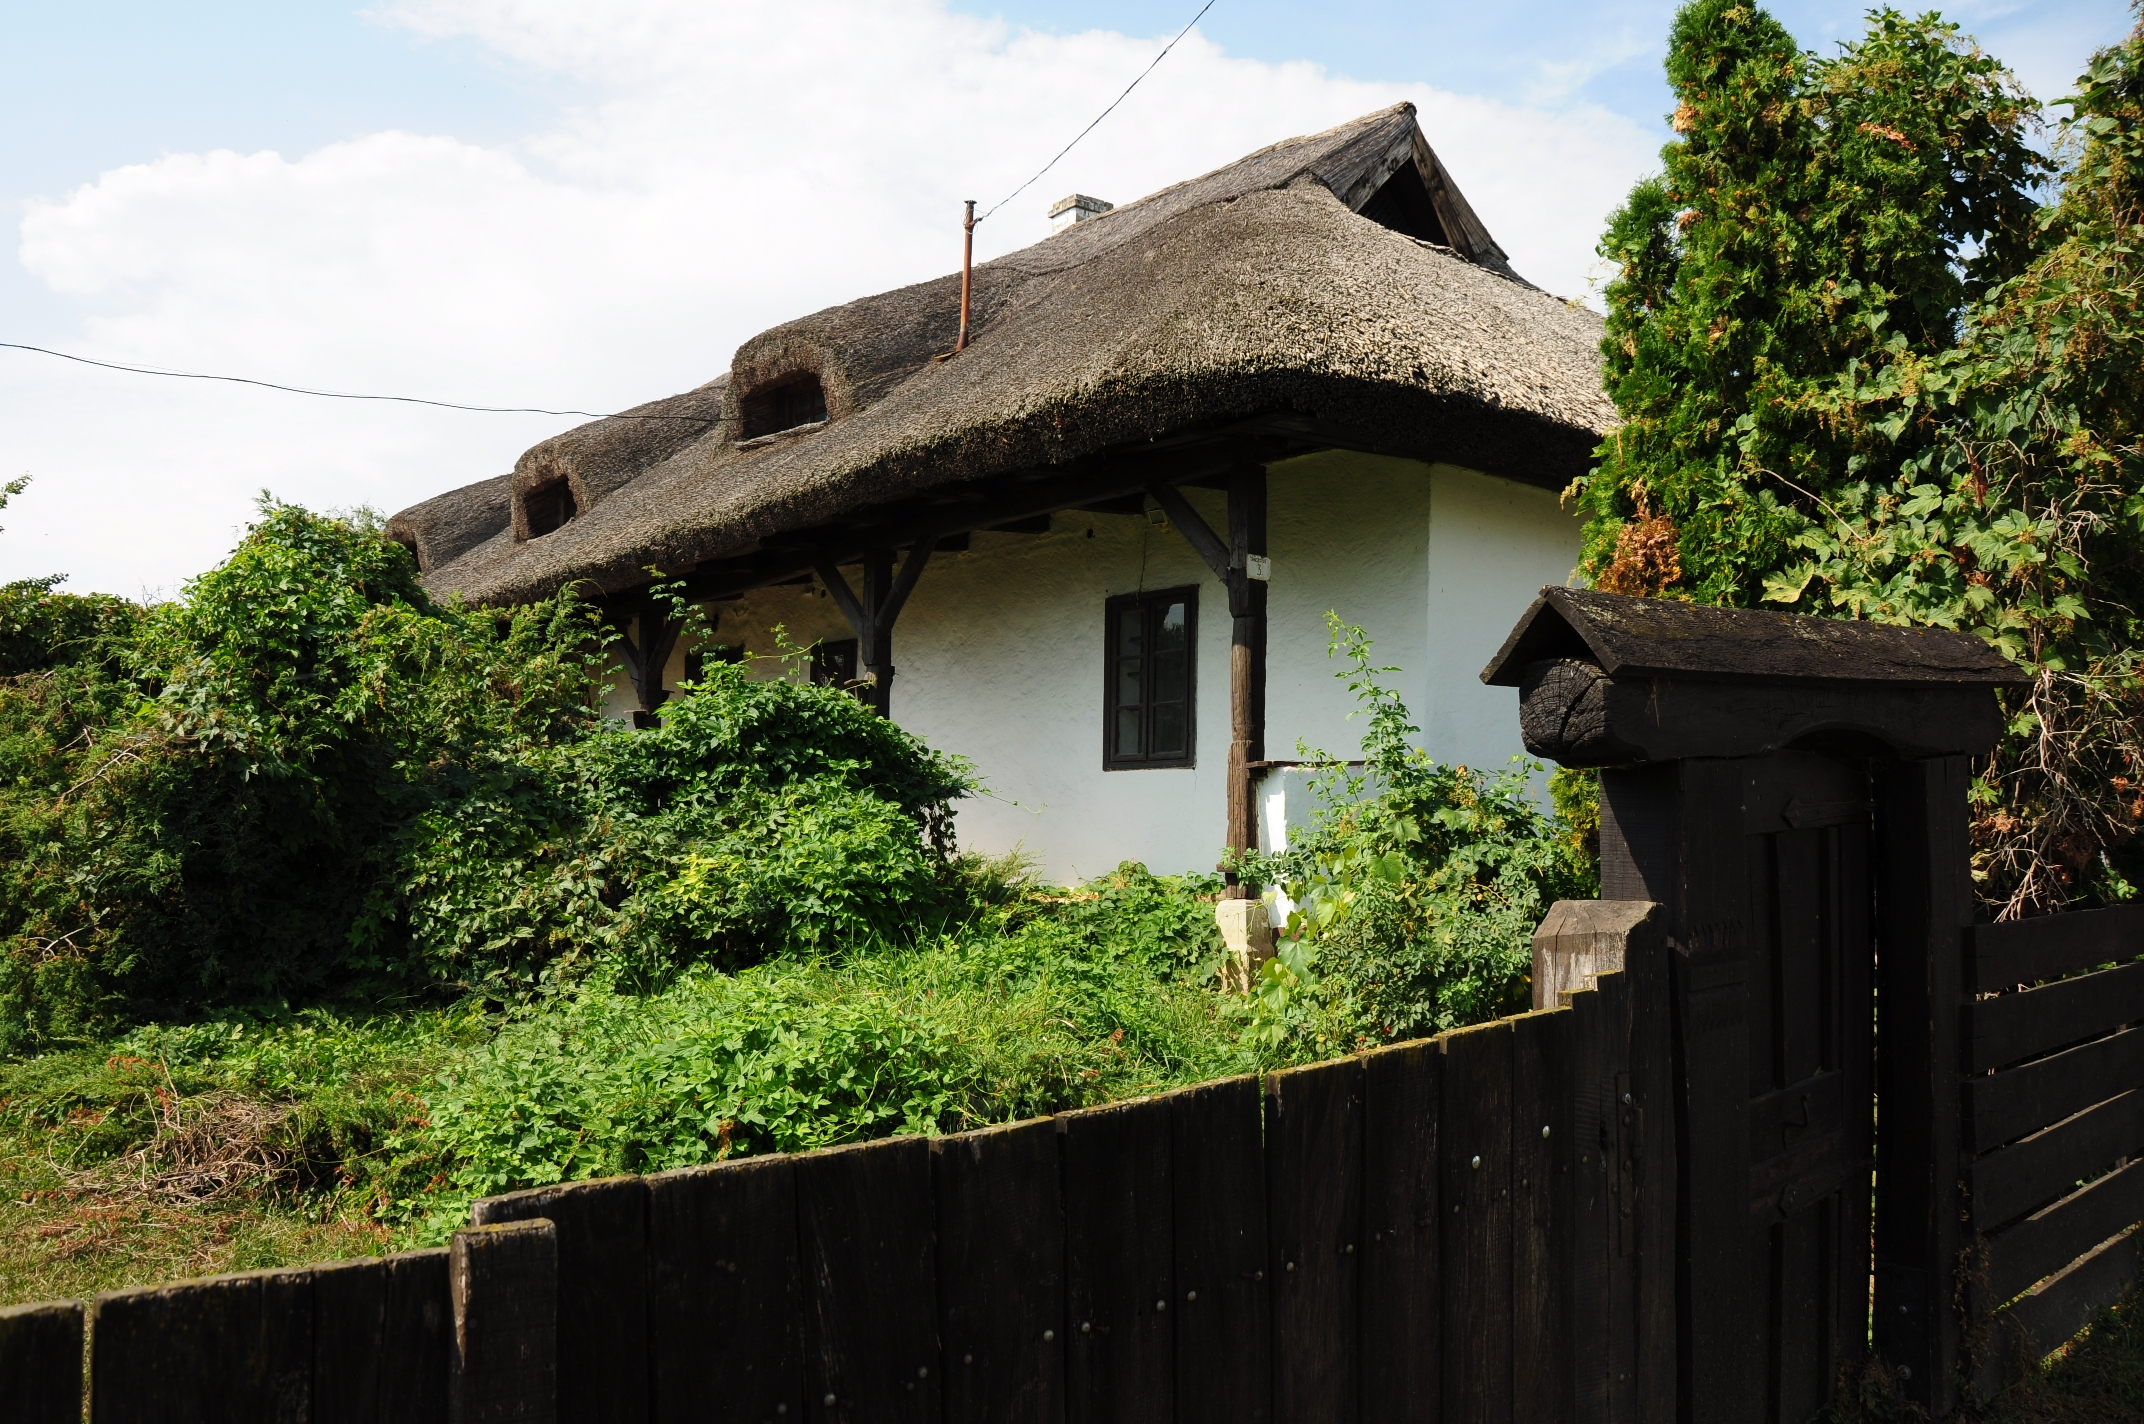 Lovely thatched house in Tiszadob